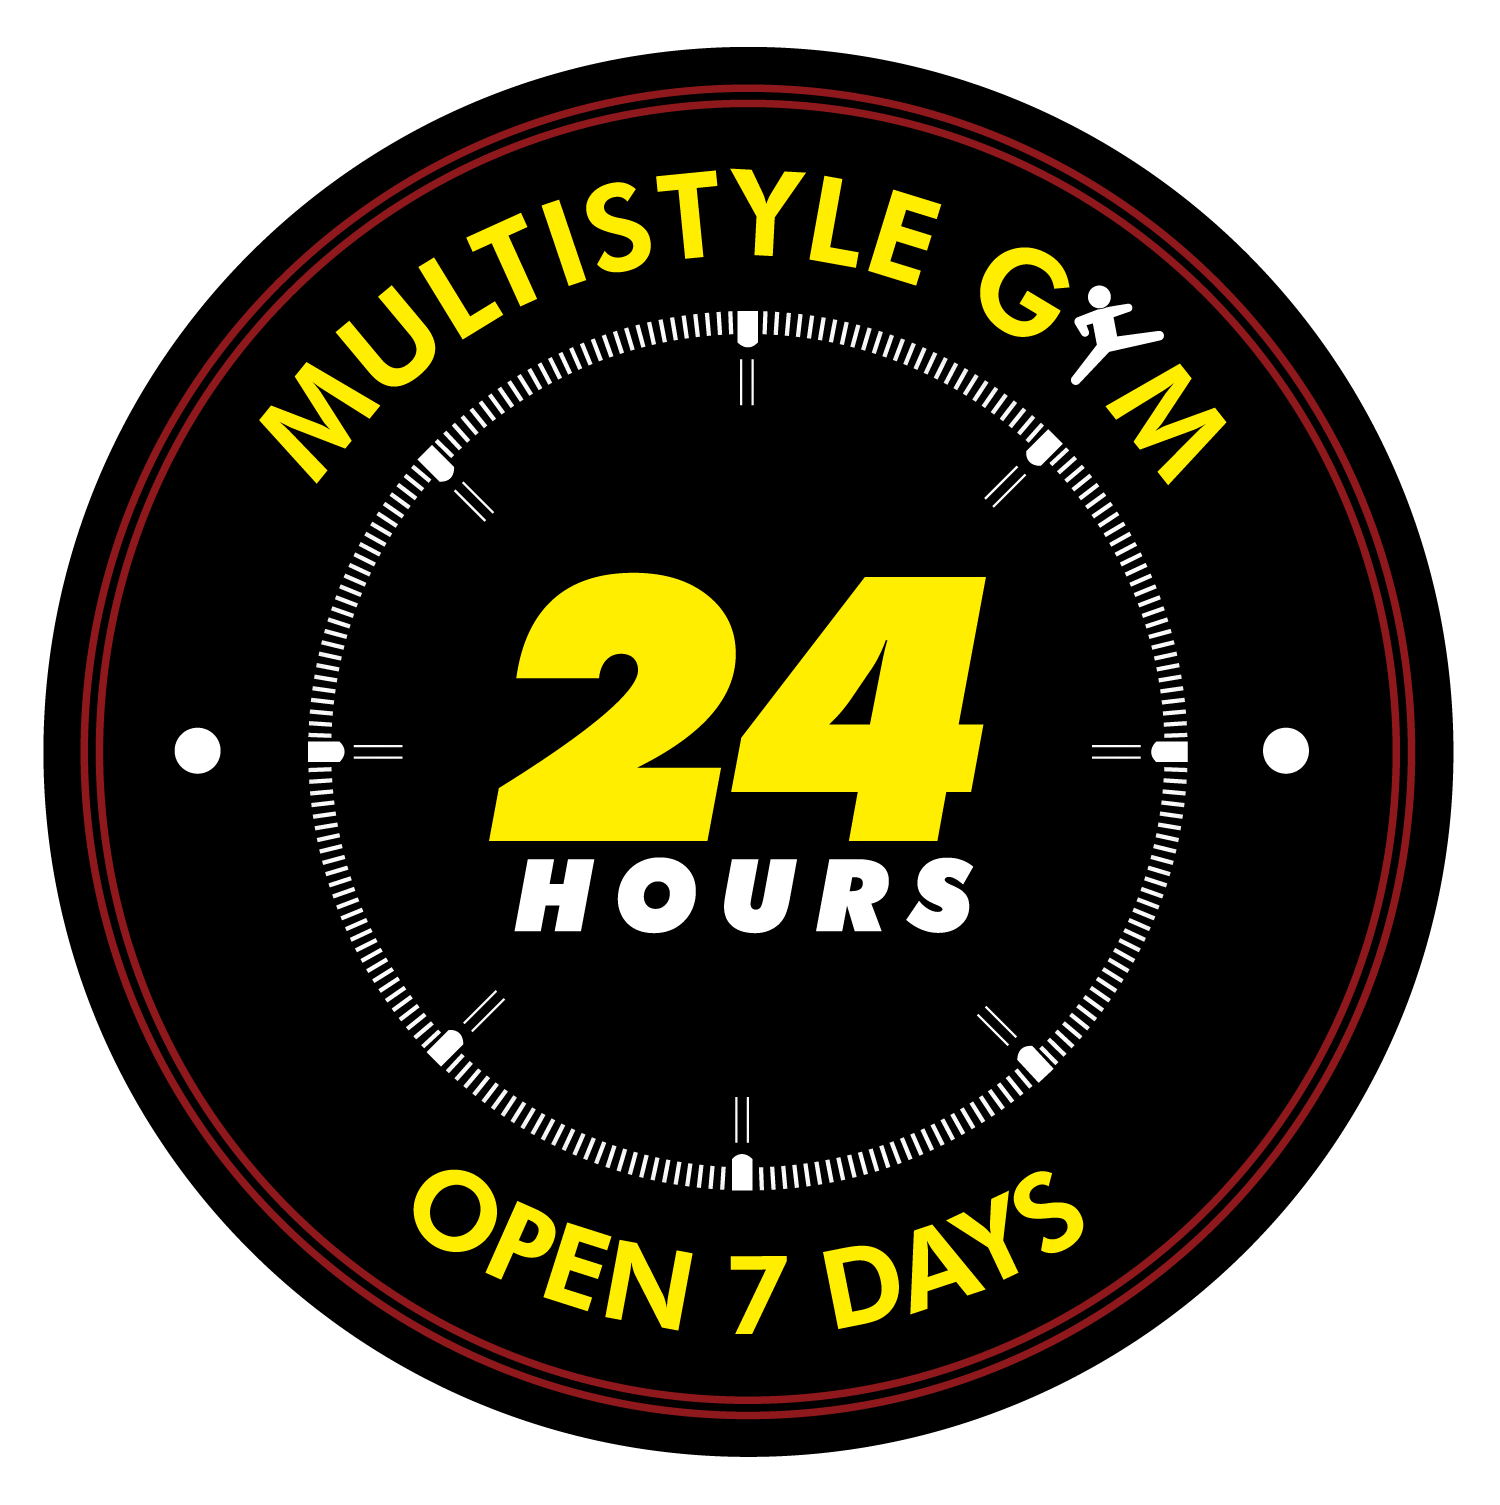 Multistyle Gym 24/7